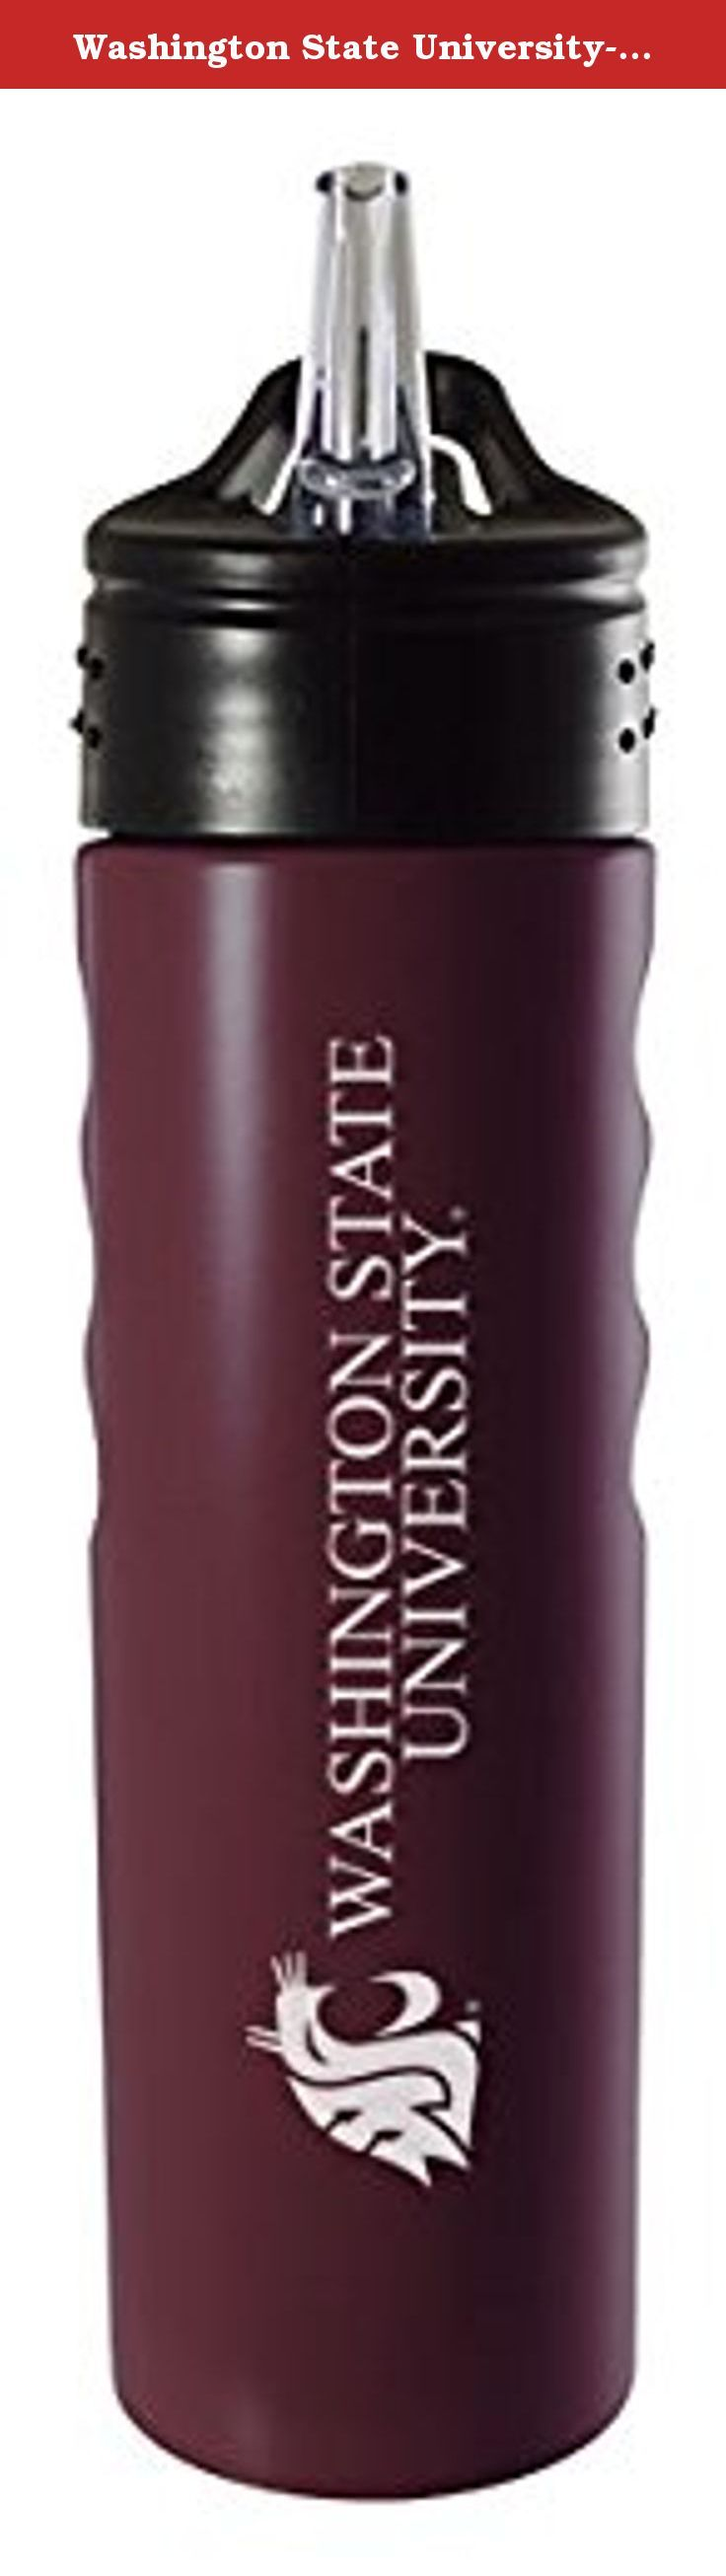 Washington State University-24oz. Stainless Steel Grip Water Bottle with Straw-Burgundy. This Washington State University This 24oz. Stainless Steel water bottle is a beautiful way to proudly show off your team spirit while enjoying your favorite drink. This water bottle has a modern sleek look made for style and comfort with its solid matte finish, debossed finger grip and a pull up spout and straw for easy access drinking.